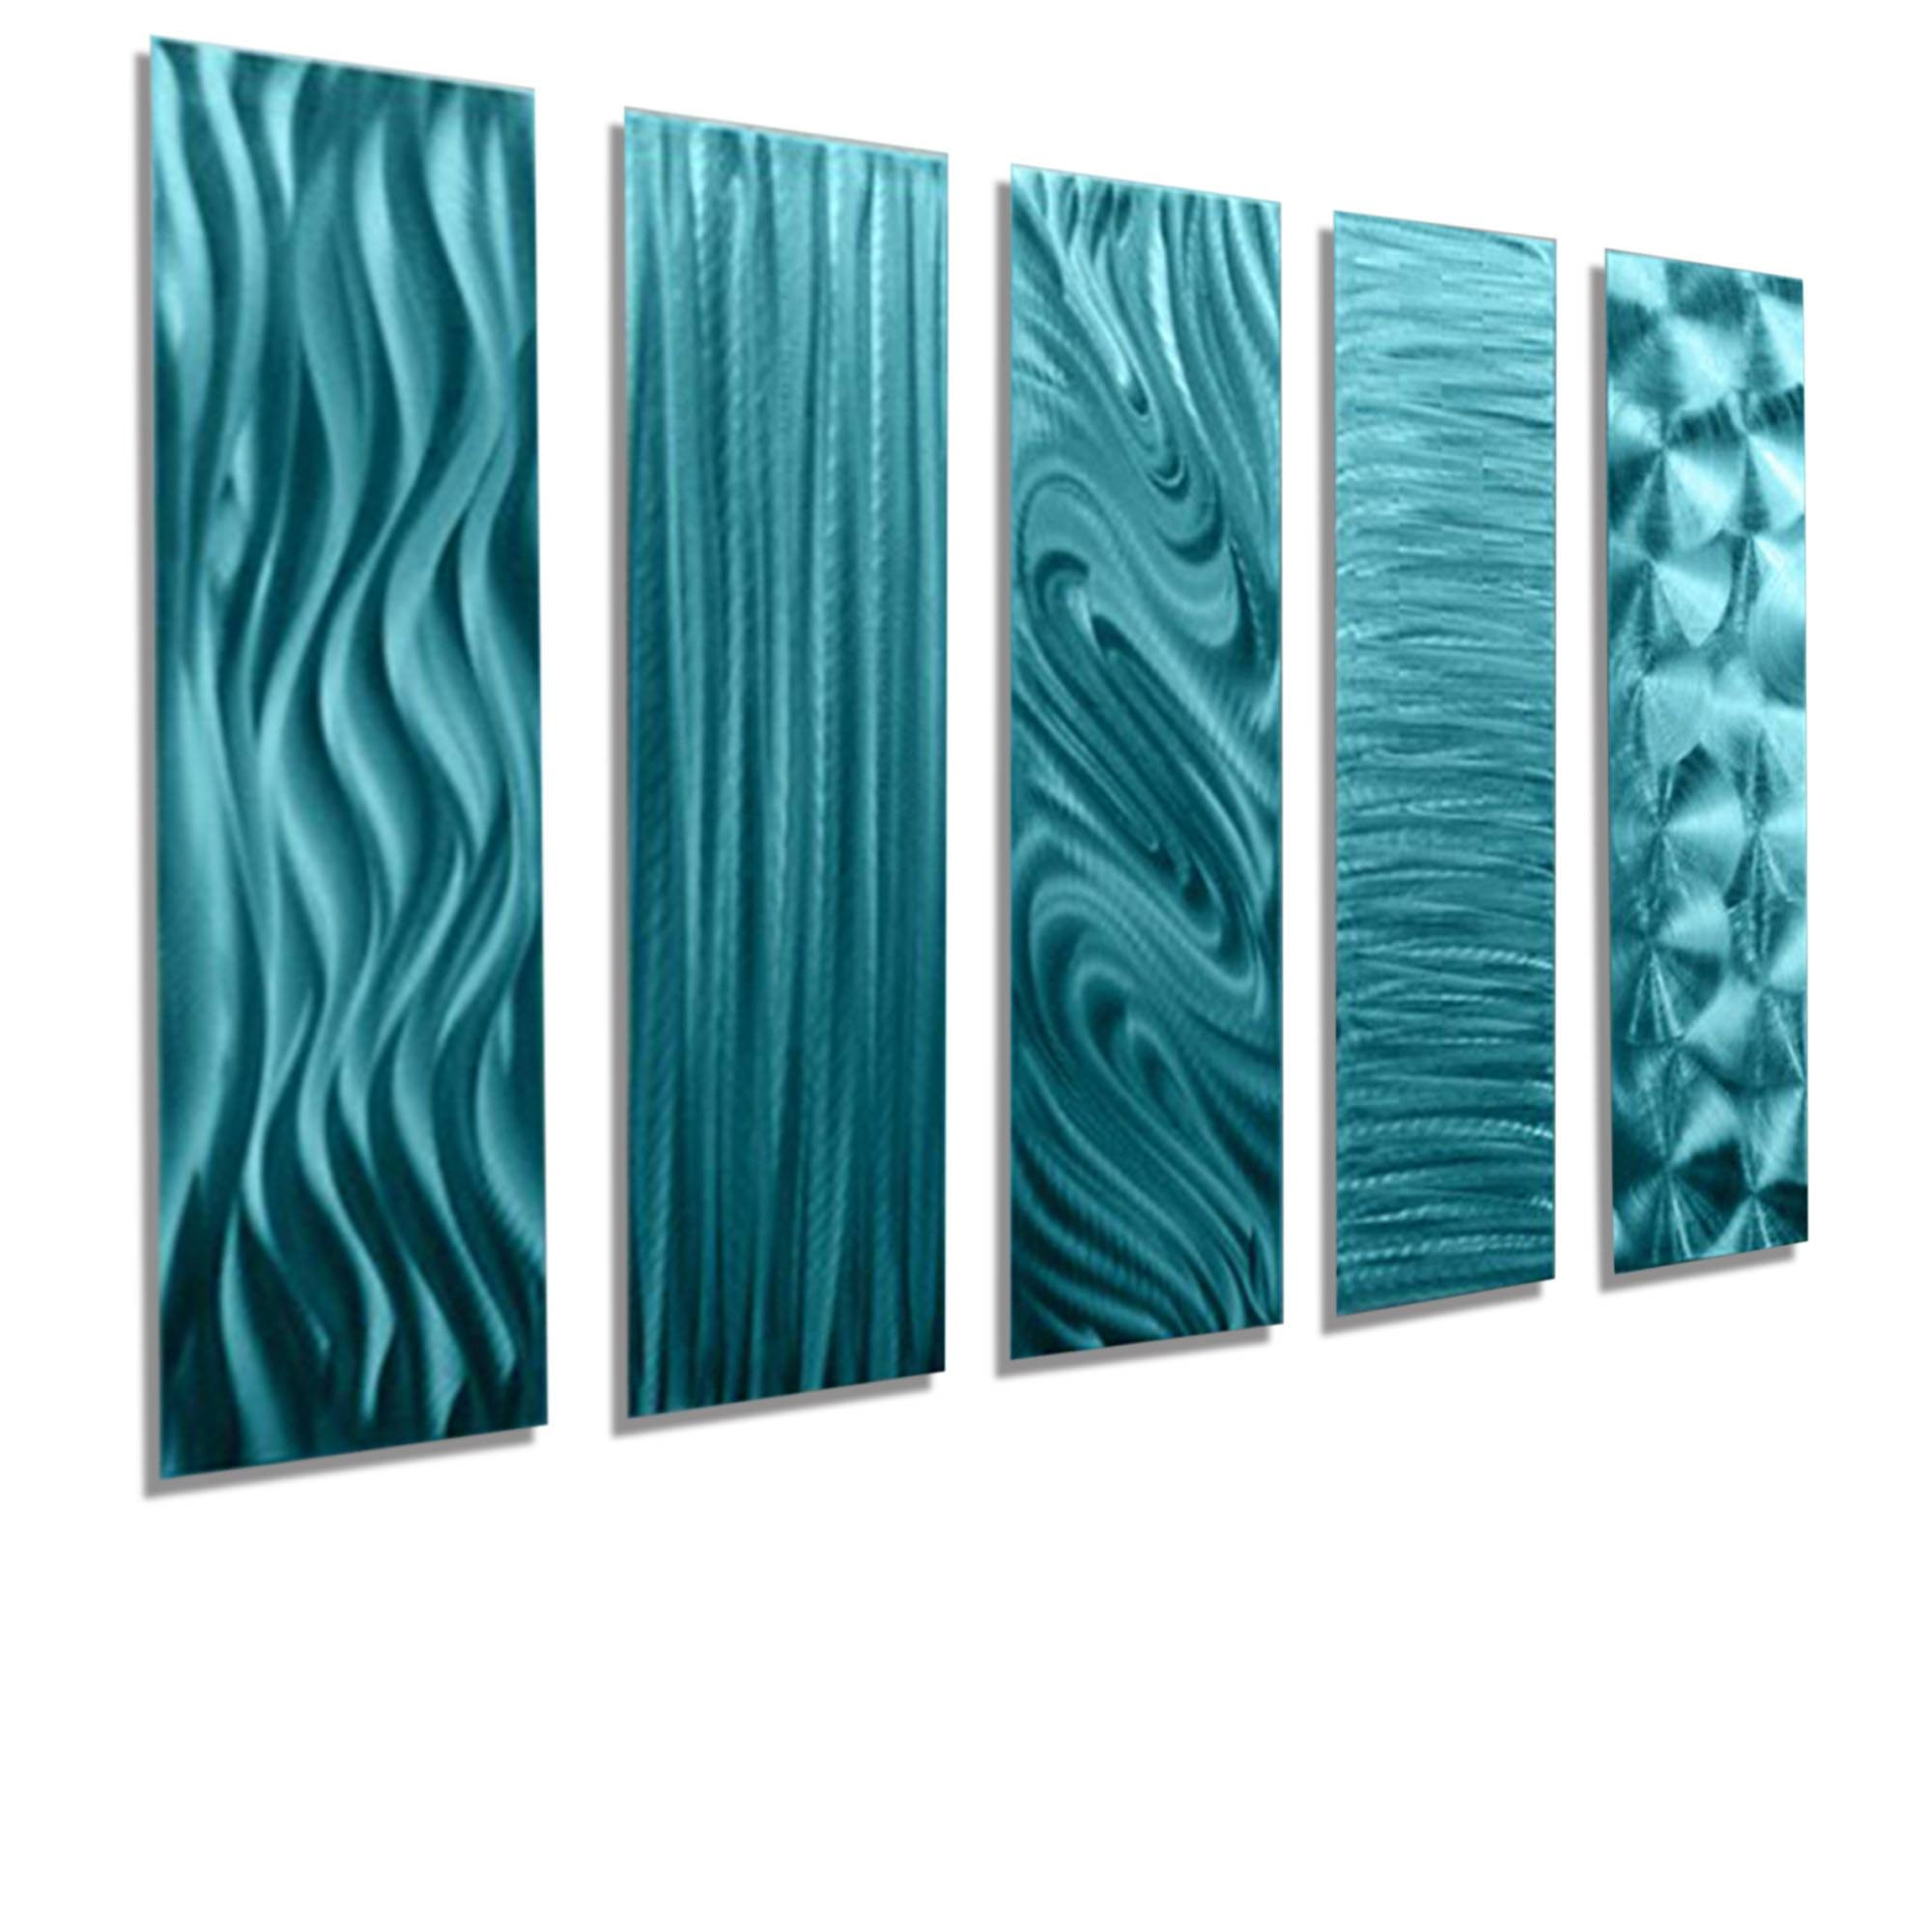 "5 Easy Pieces Aqua - Set Of Five 24"" X 6"" Metal Wall Art Accents within Most Recently Released Teal Metal Wall Art"